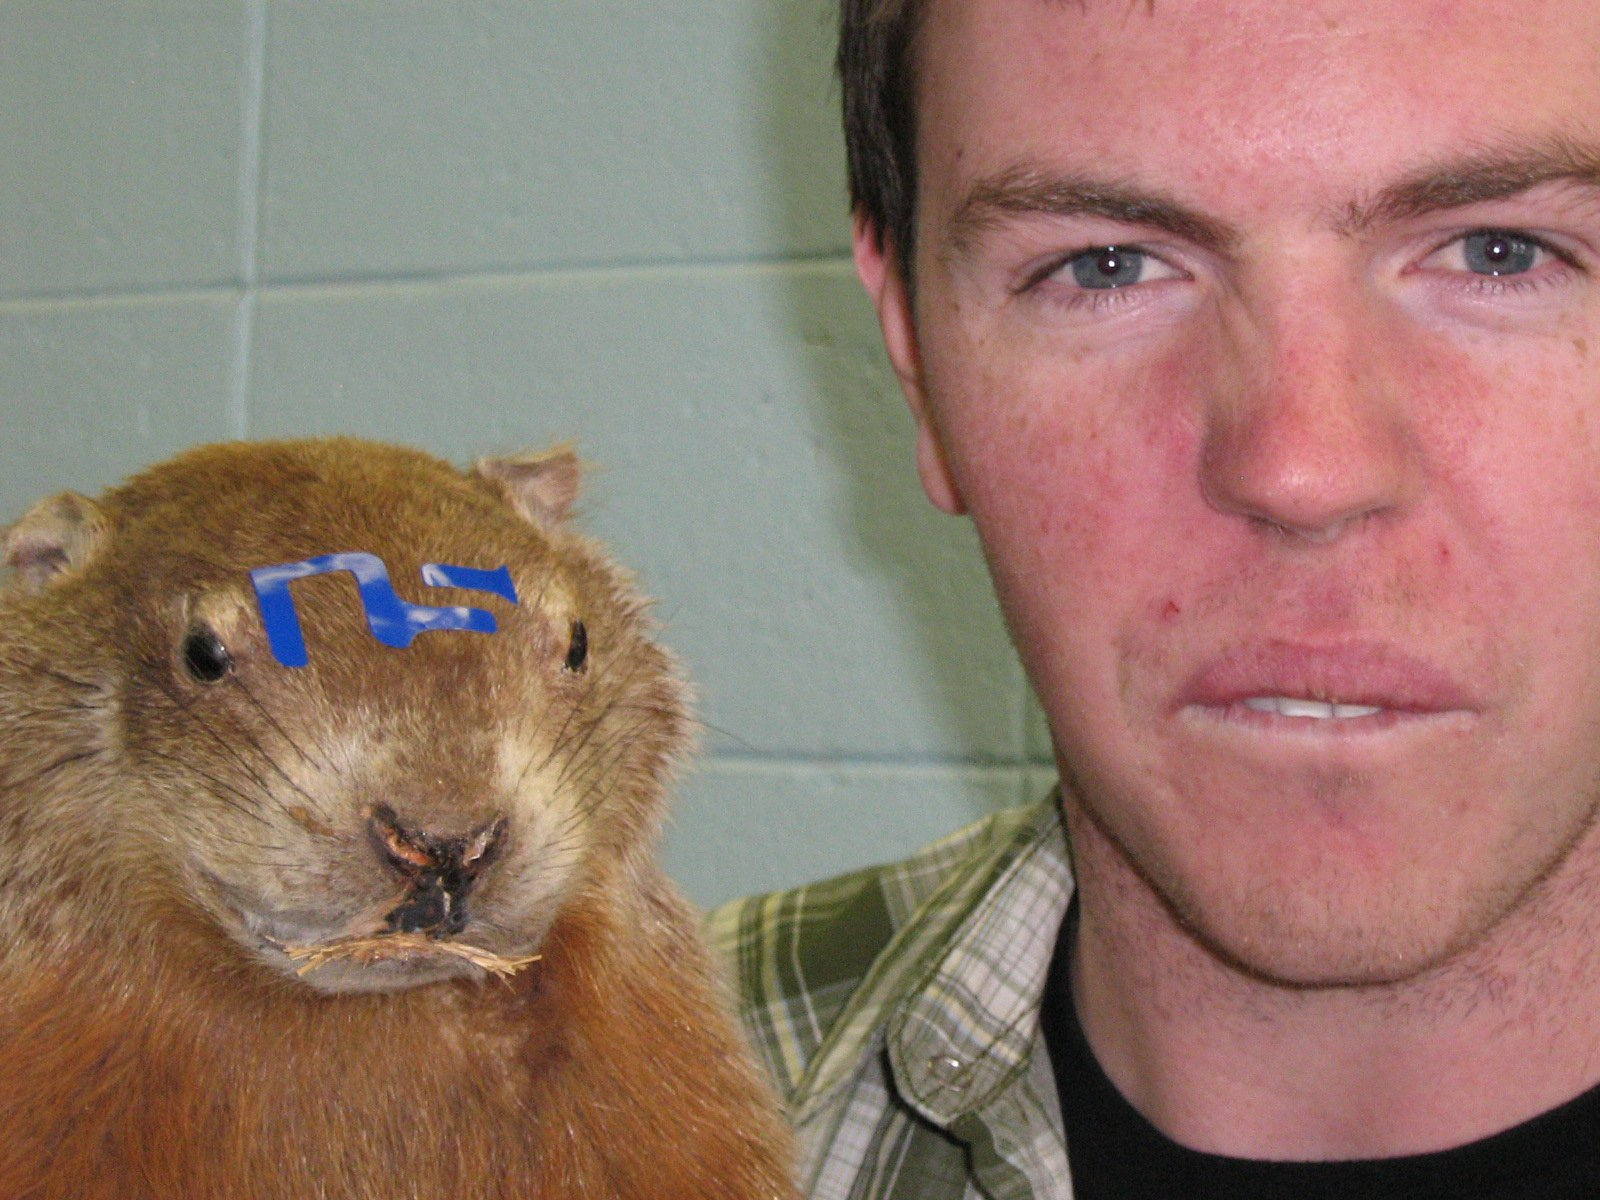 Me and my beaver